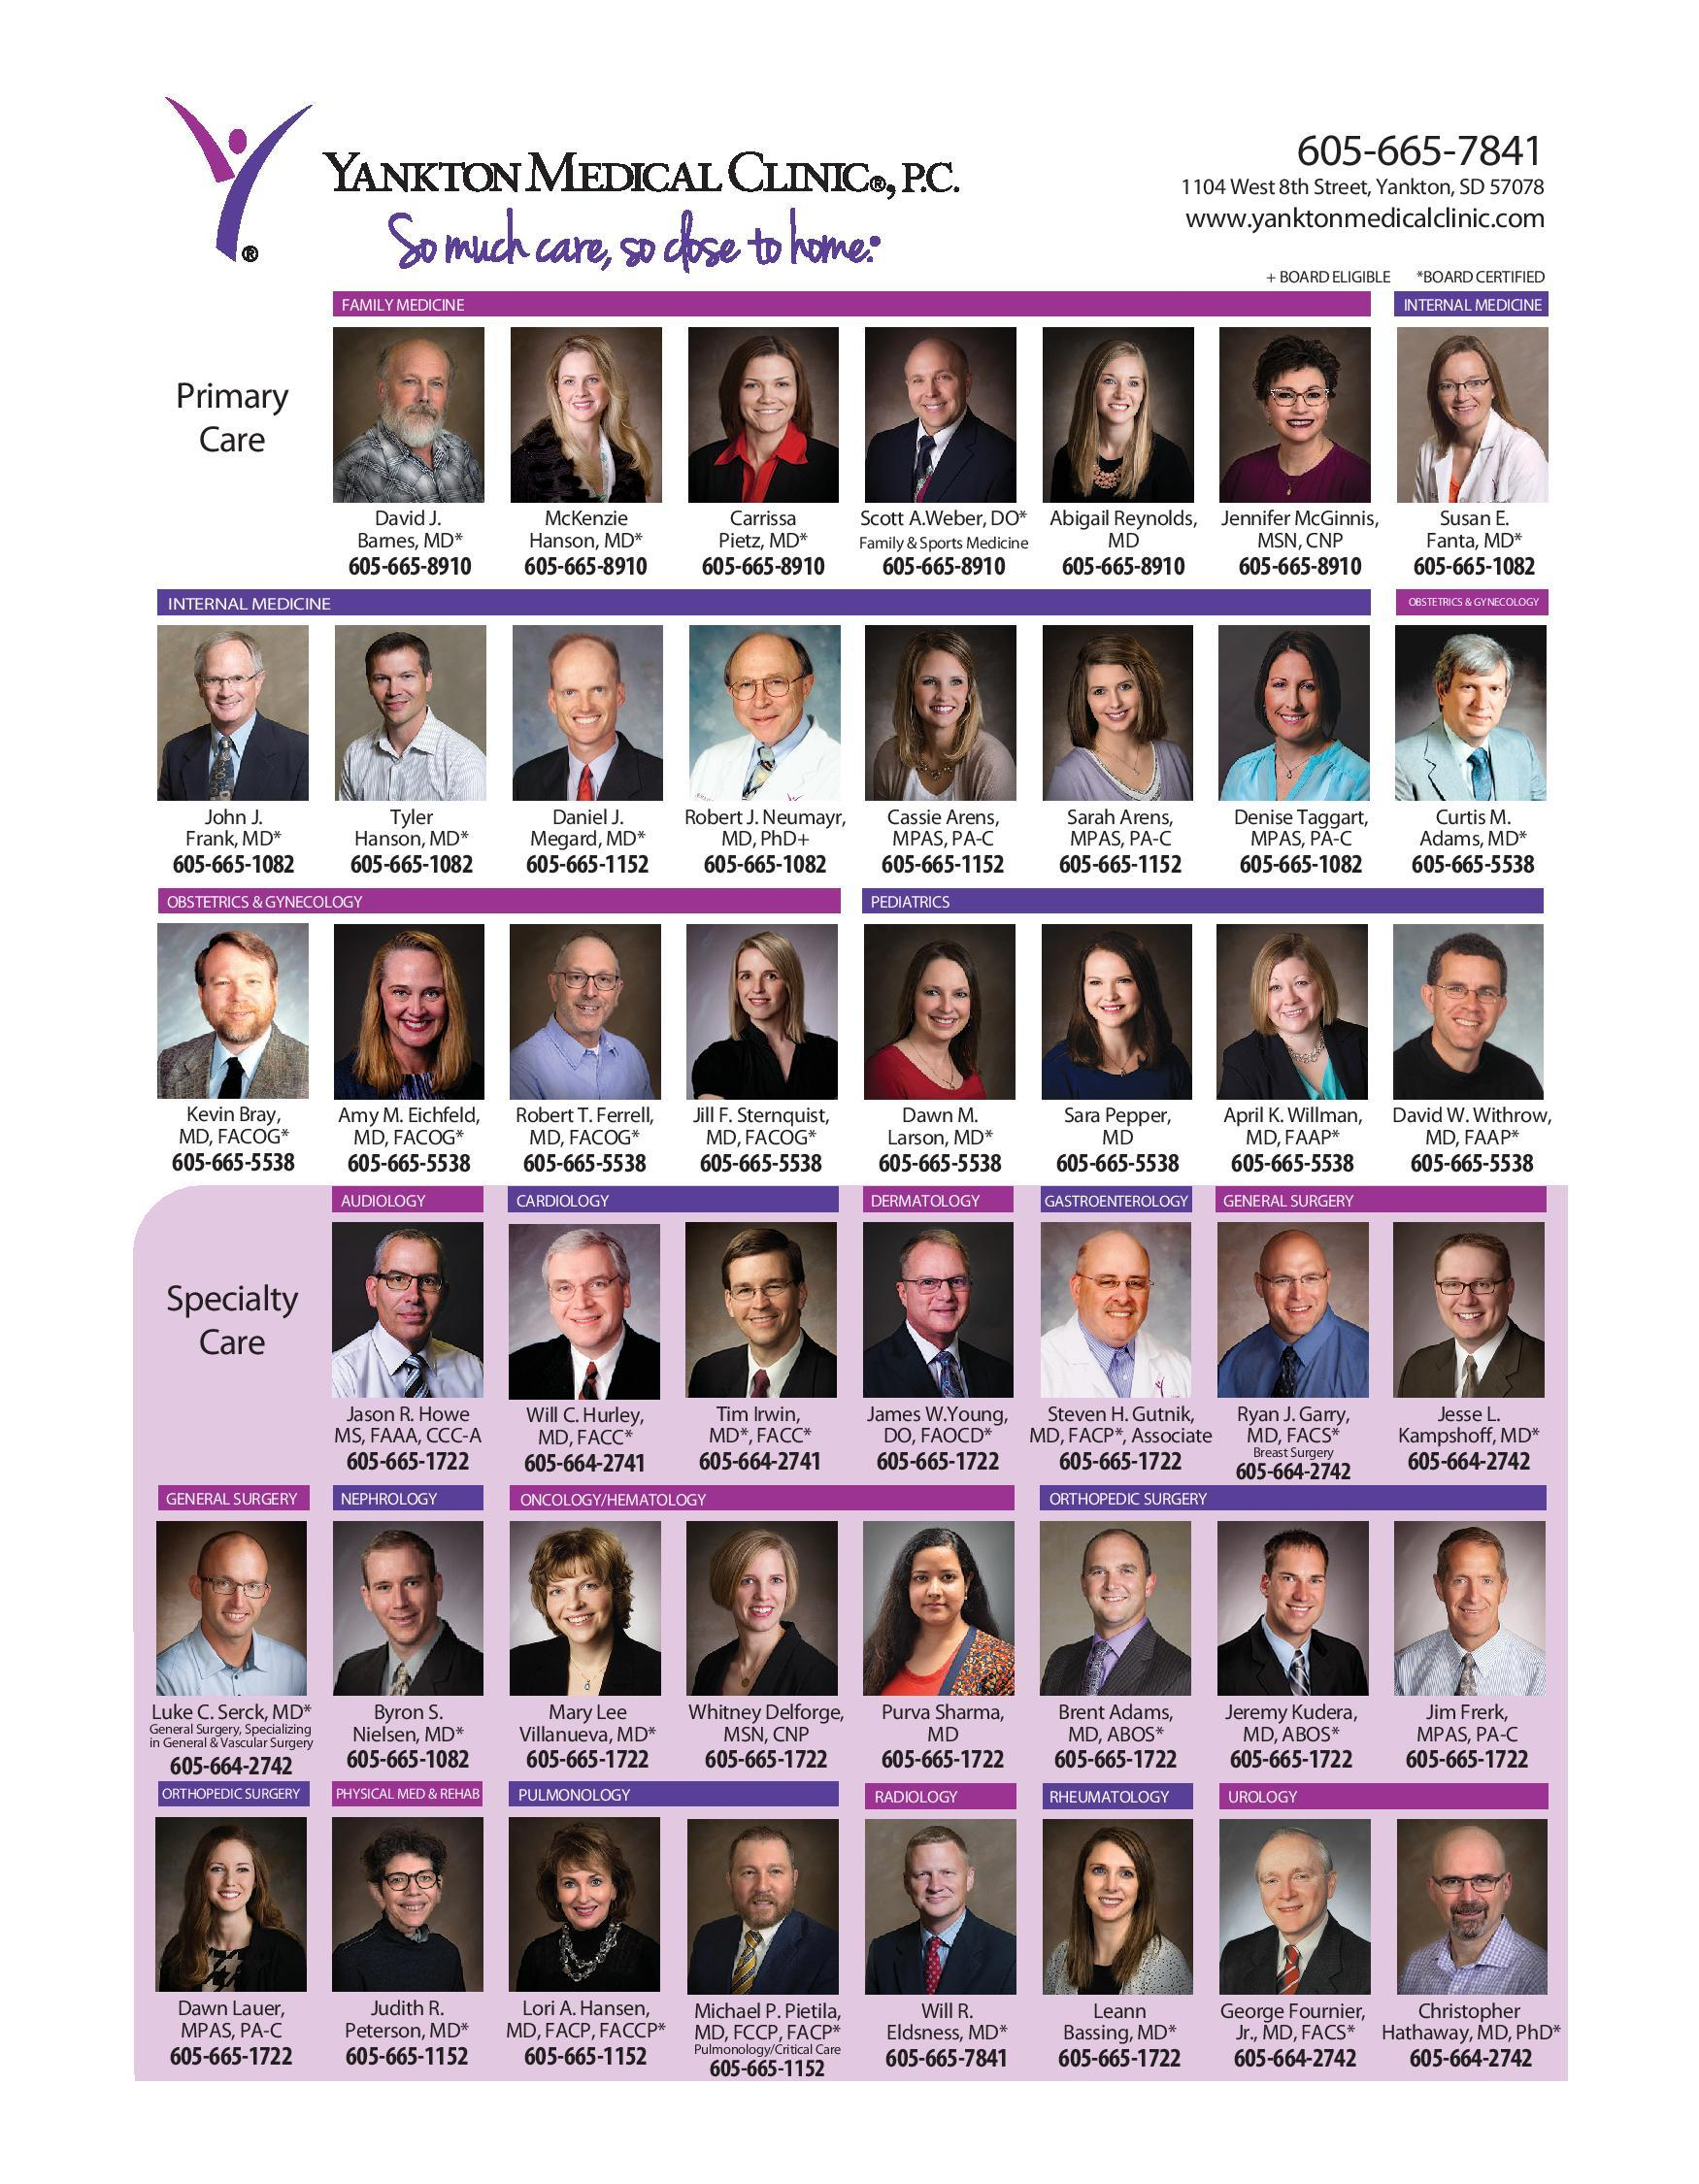 Health and Medical Directory 2018 - 2